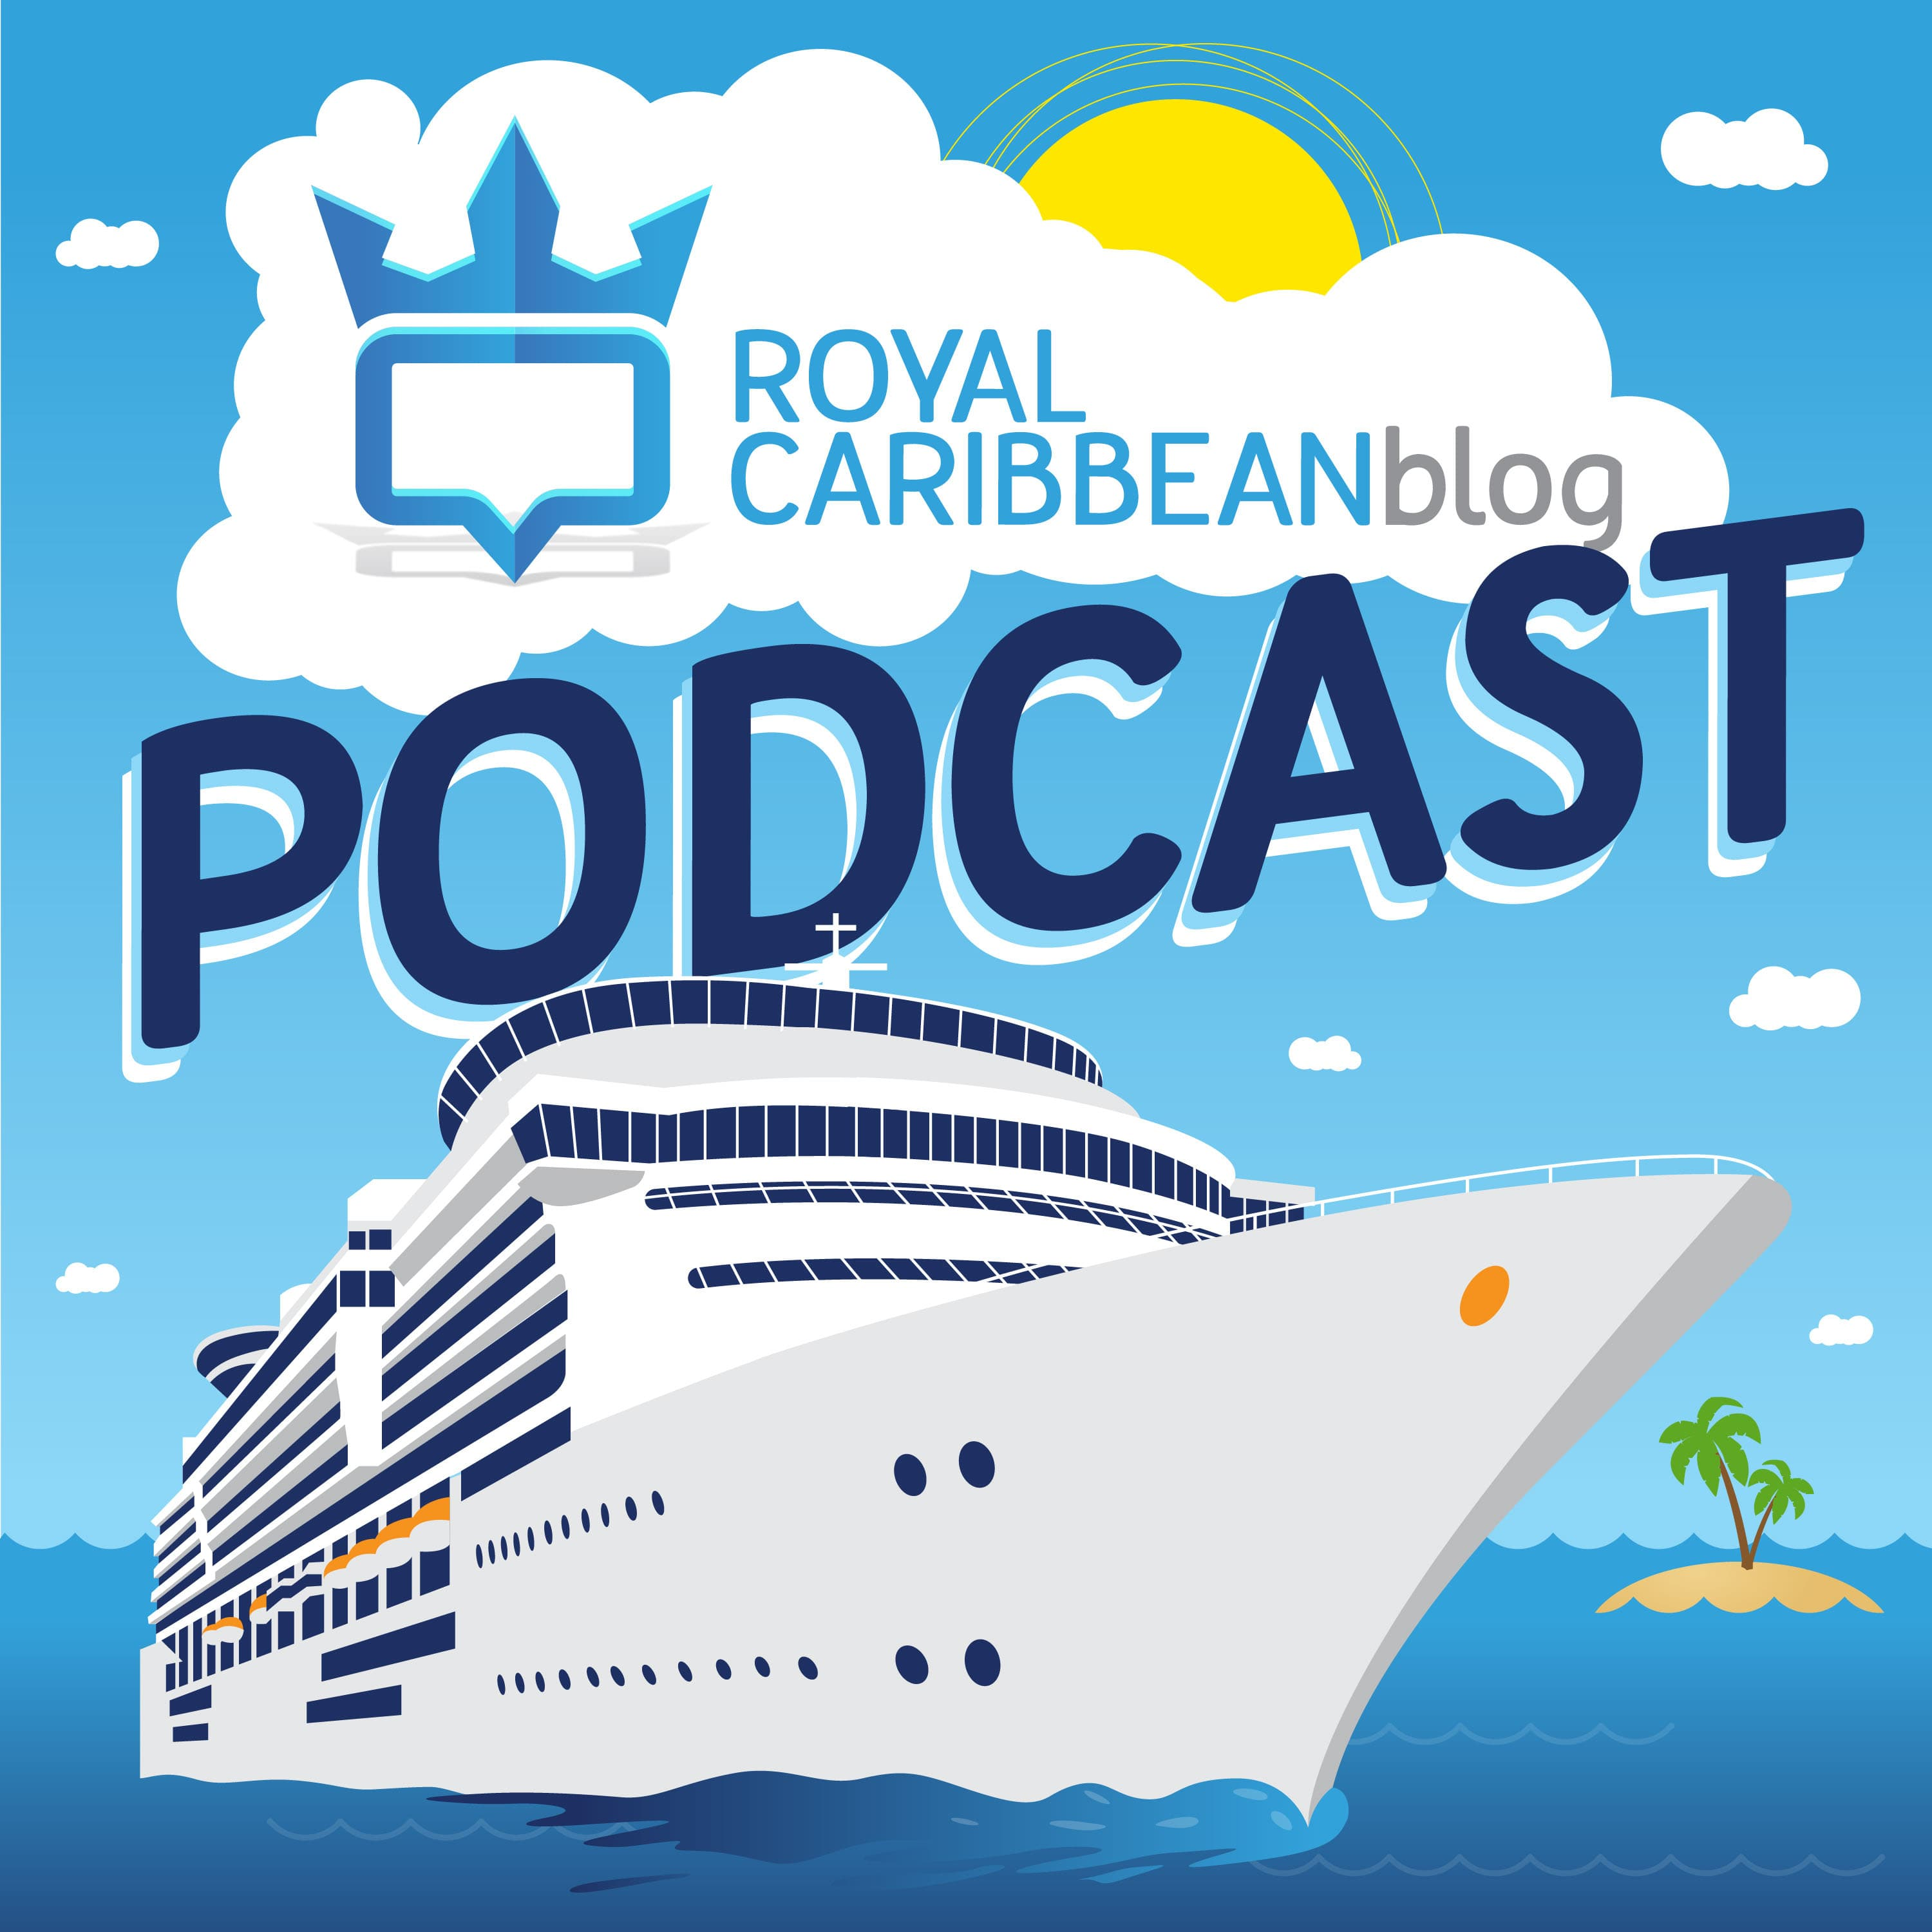 How To Pack For A Cruise On Royal Caribbean Blog Podcast  Royal Caribbean Blog